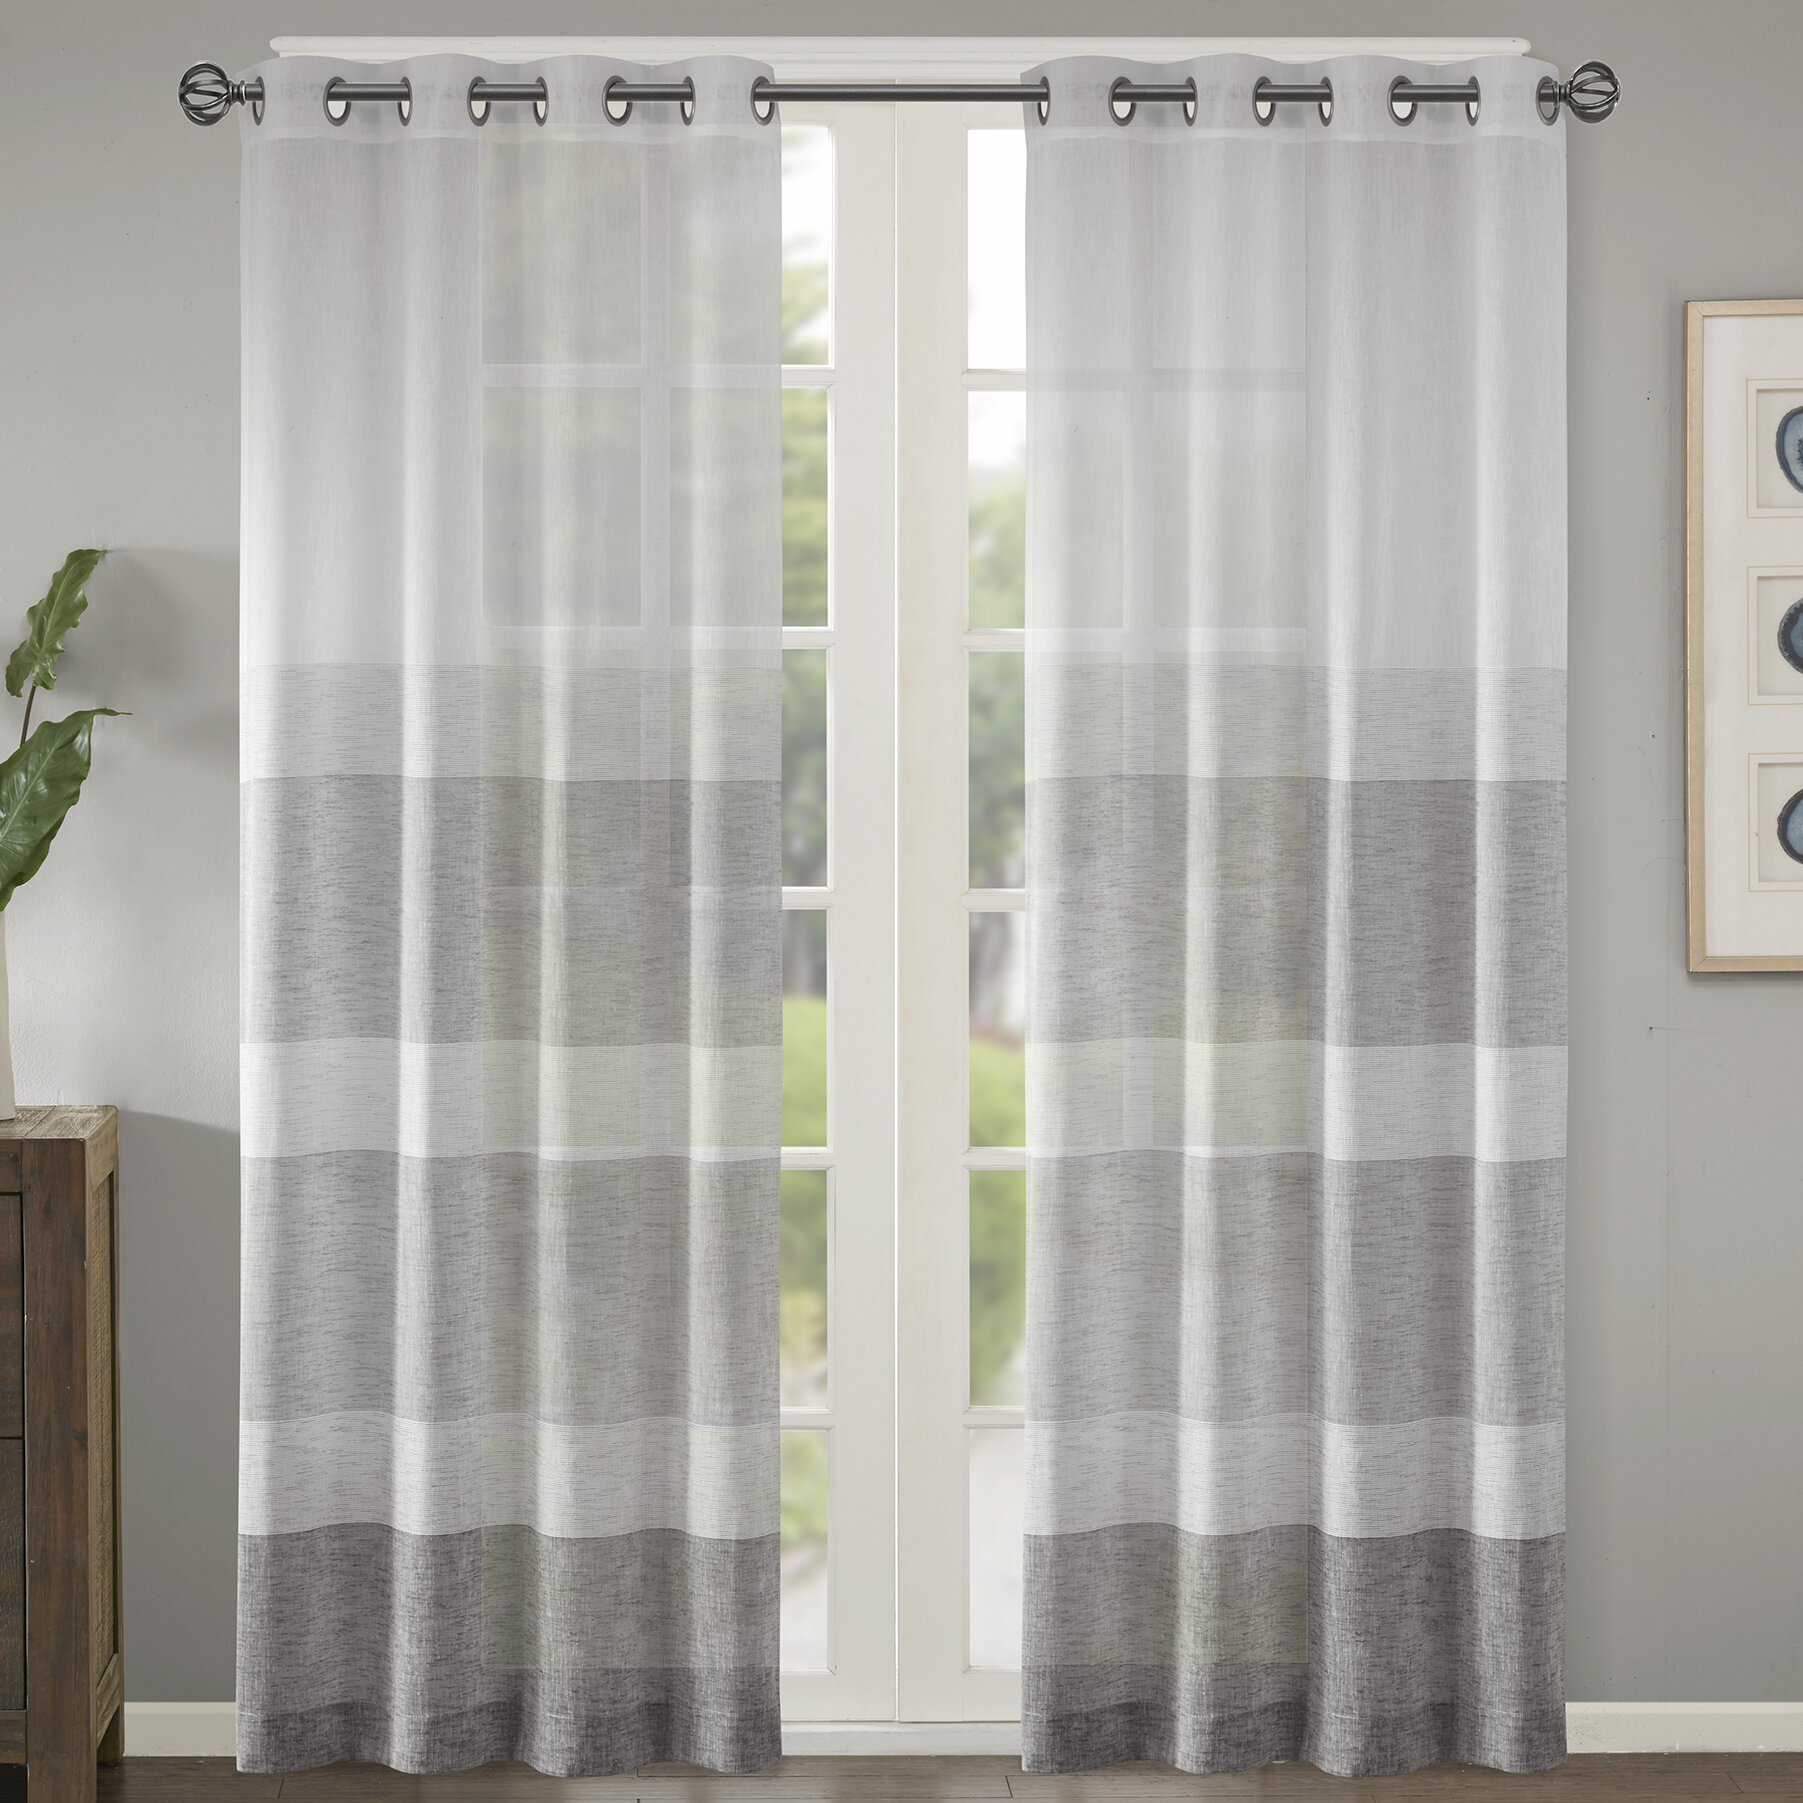 Augustus Striped Grommet Single Curtain Panel With Regard To Ocean Striped Window Curtain Panel Pairs With Grommet Top (View 18 of 20)